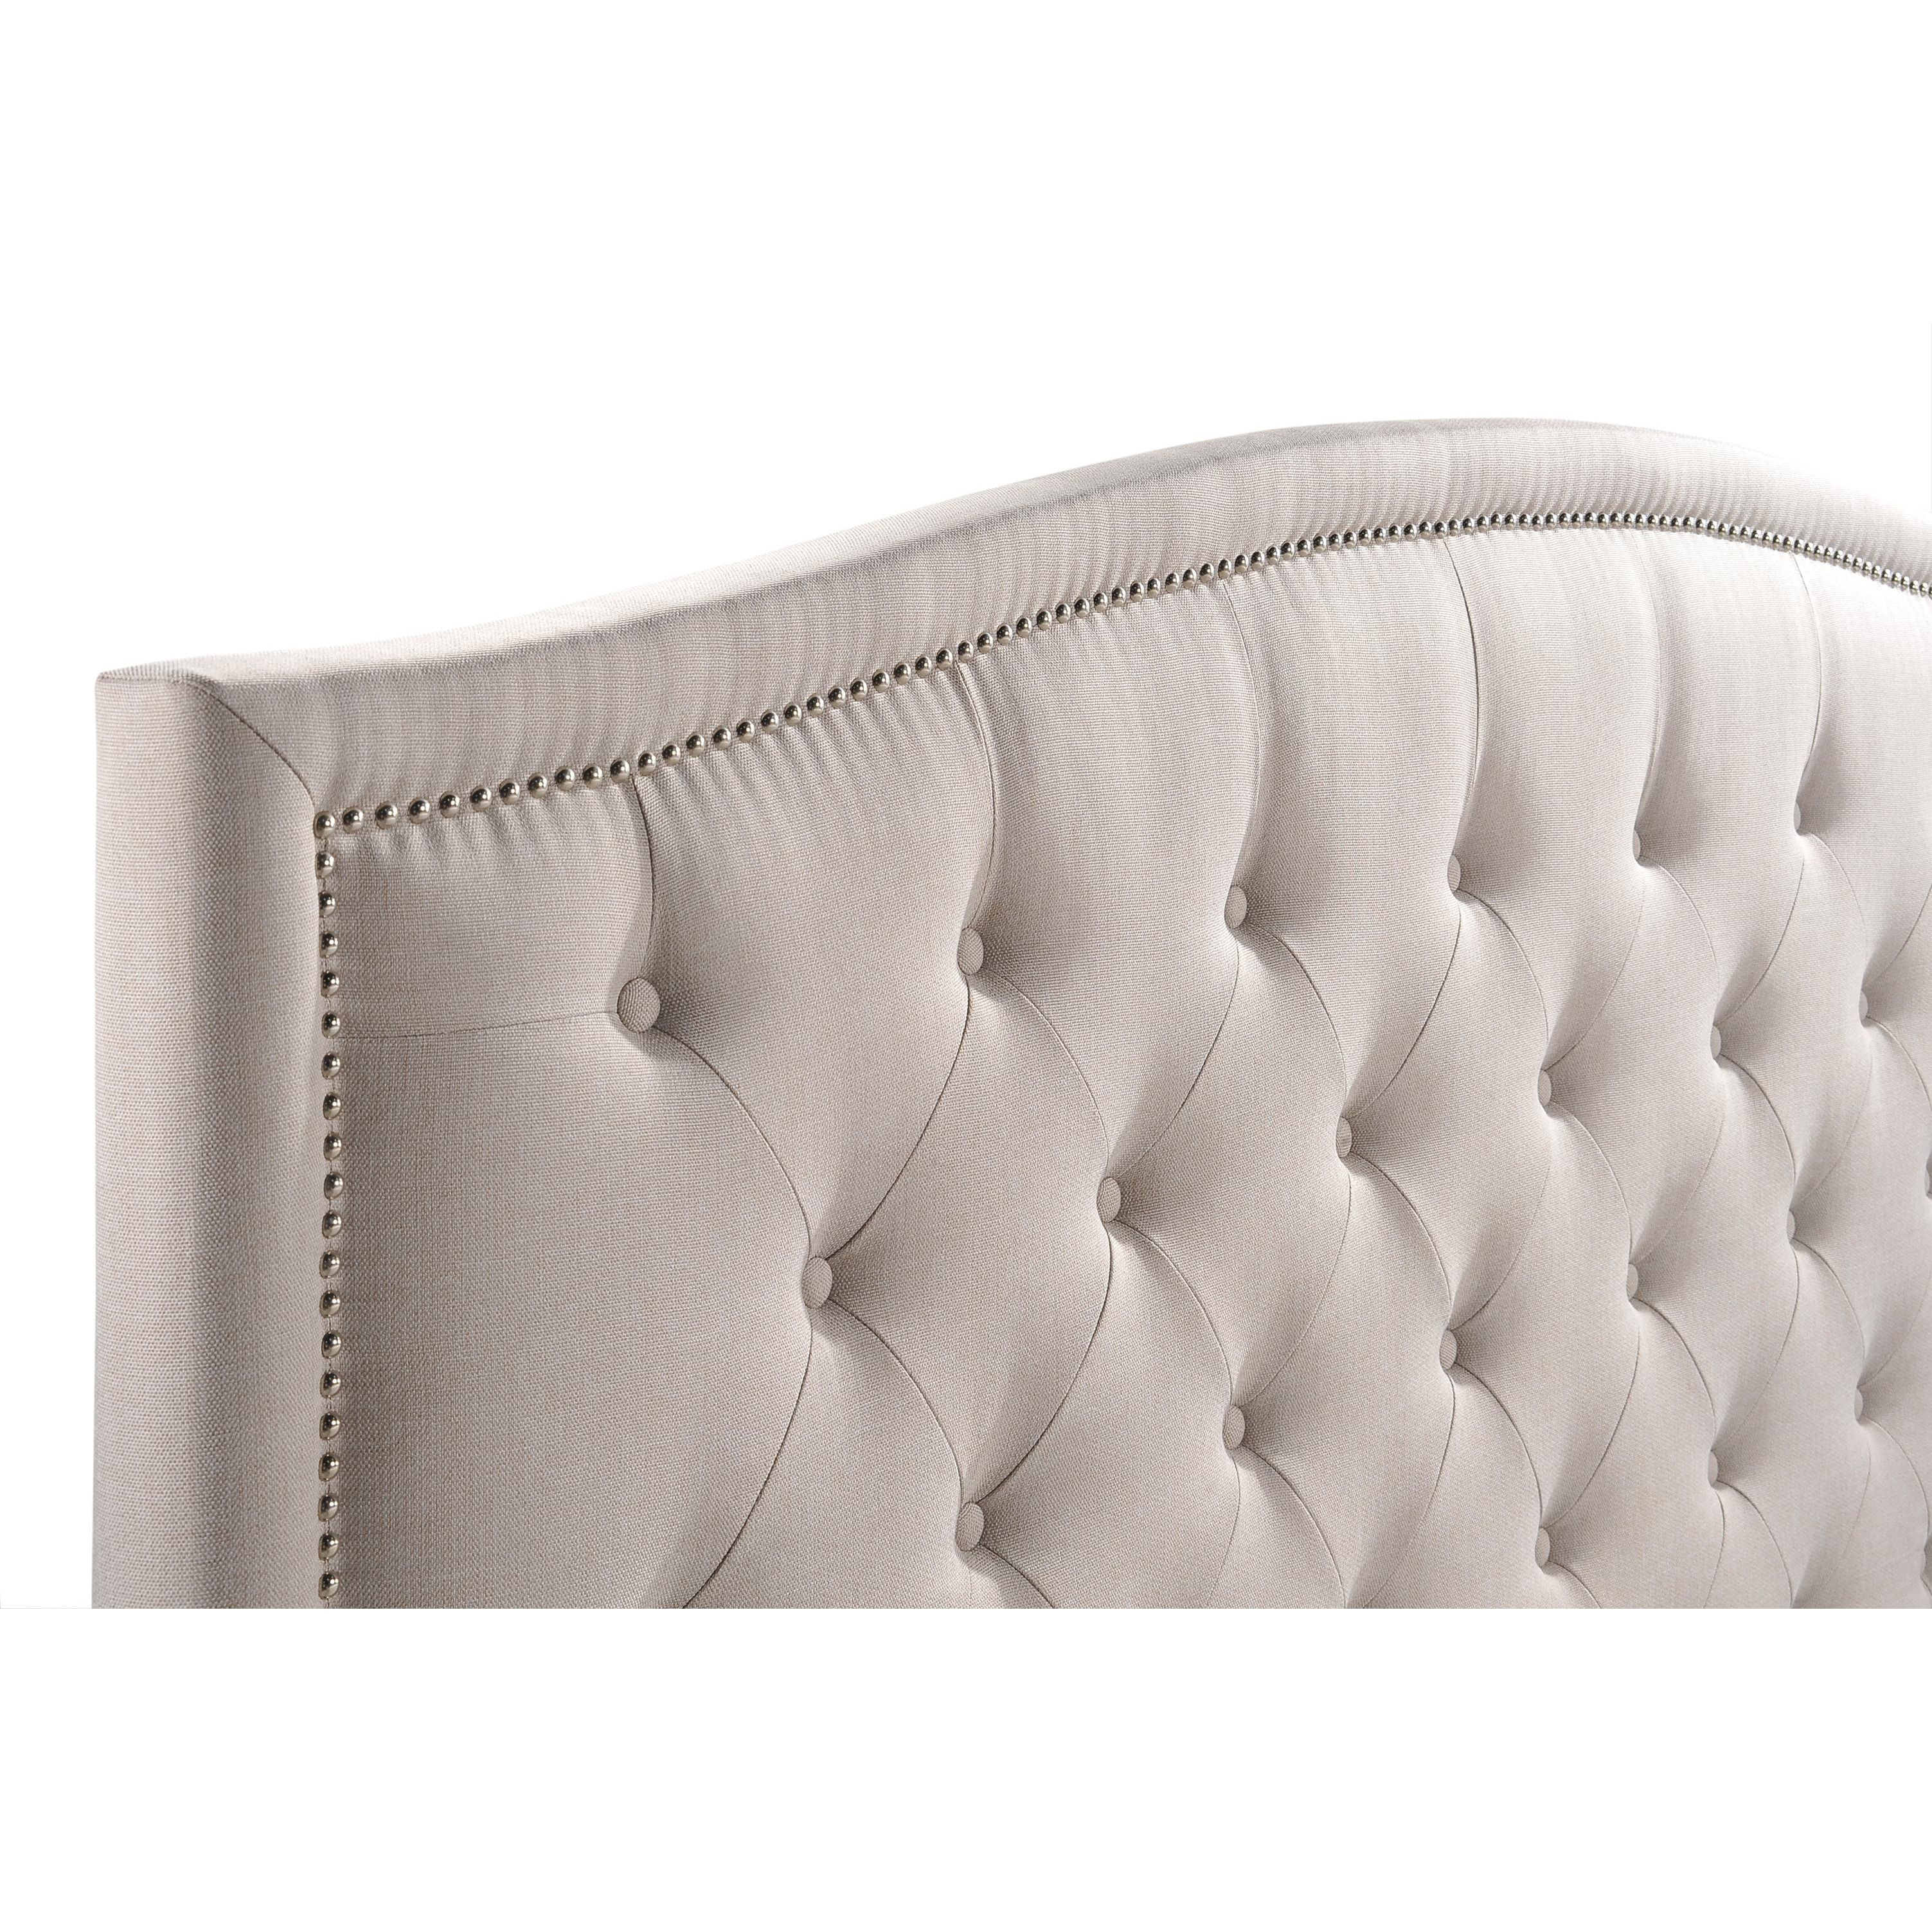 Luxeo Camden Tufted Palazzo Khaki Mist Colored Contemporary Upholstered Bed